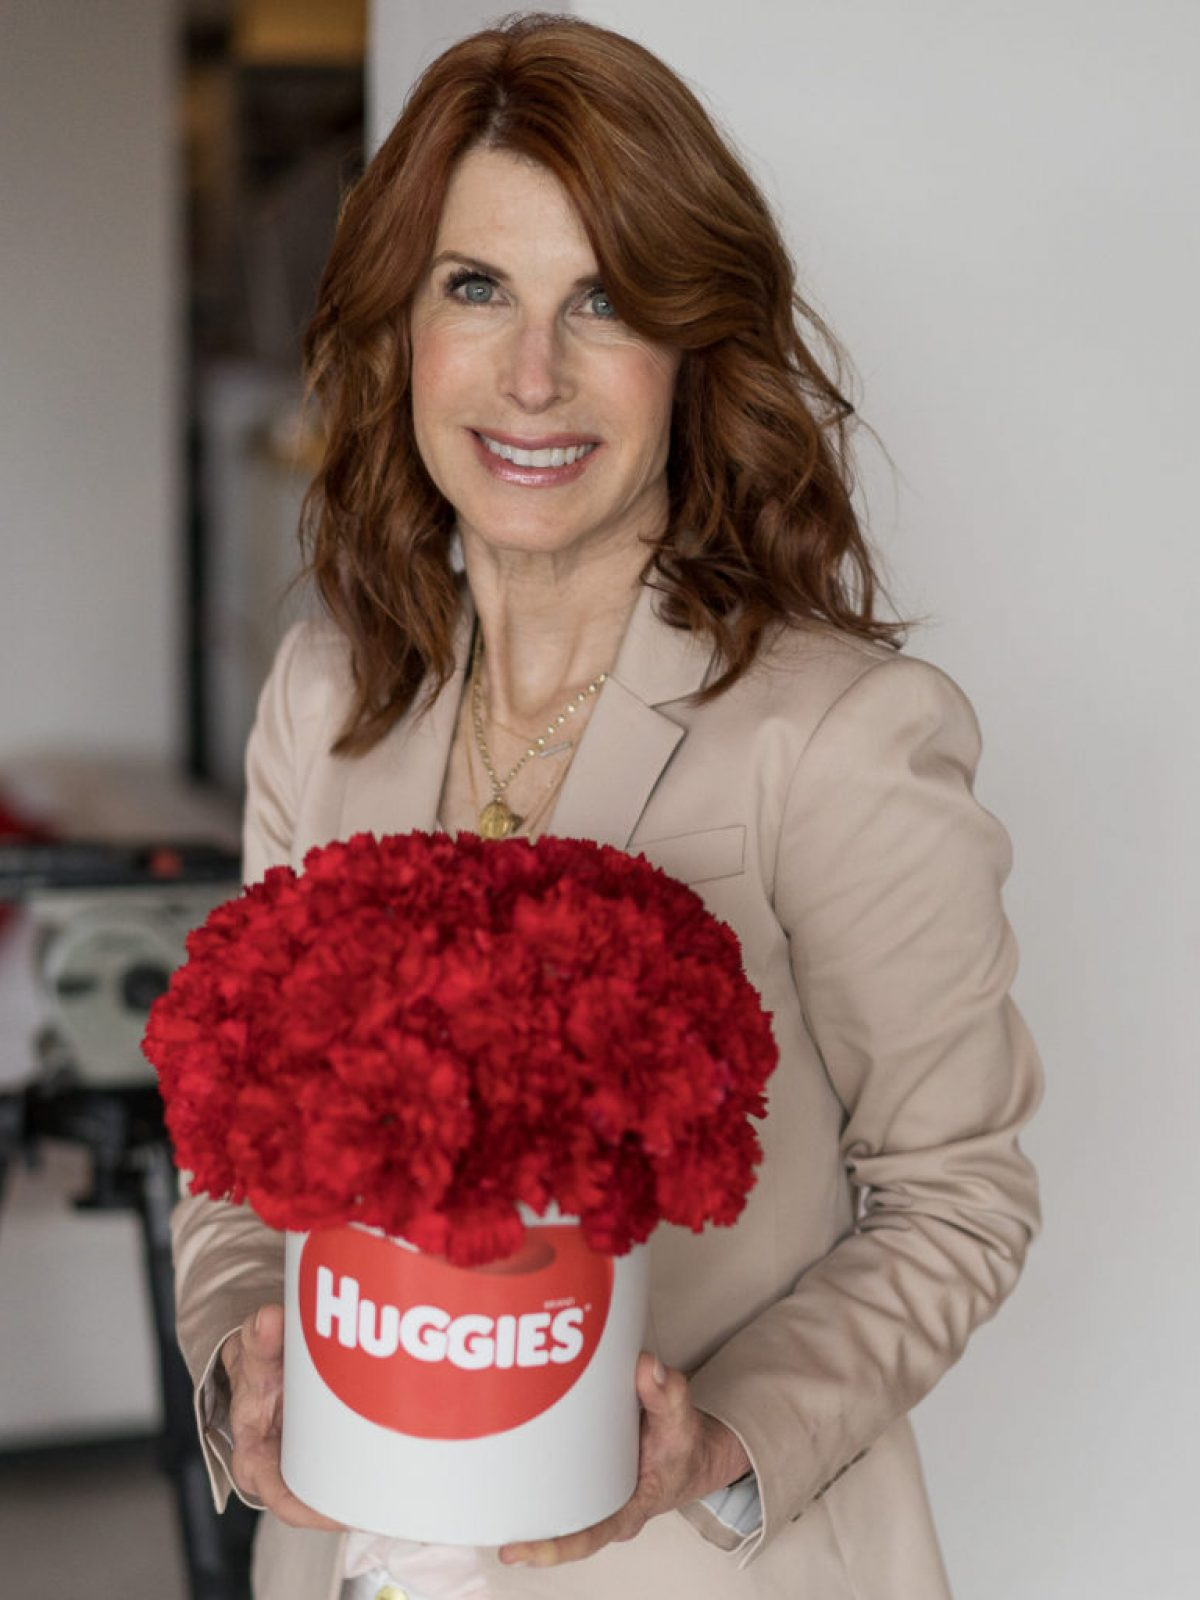 Huggies Made by You - The Middle Page